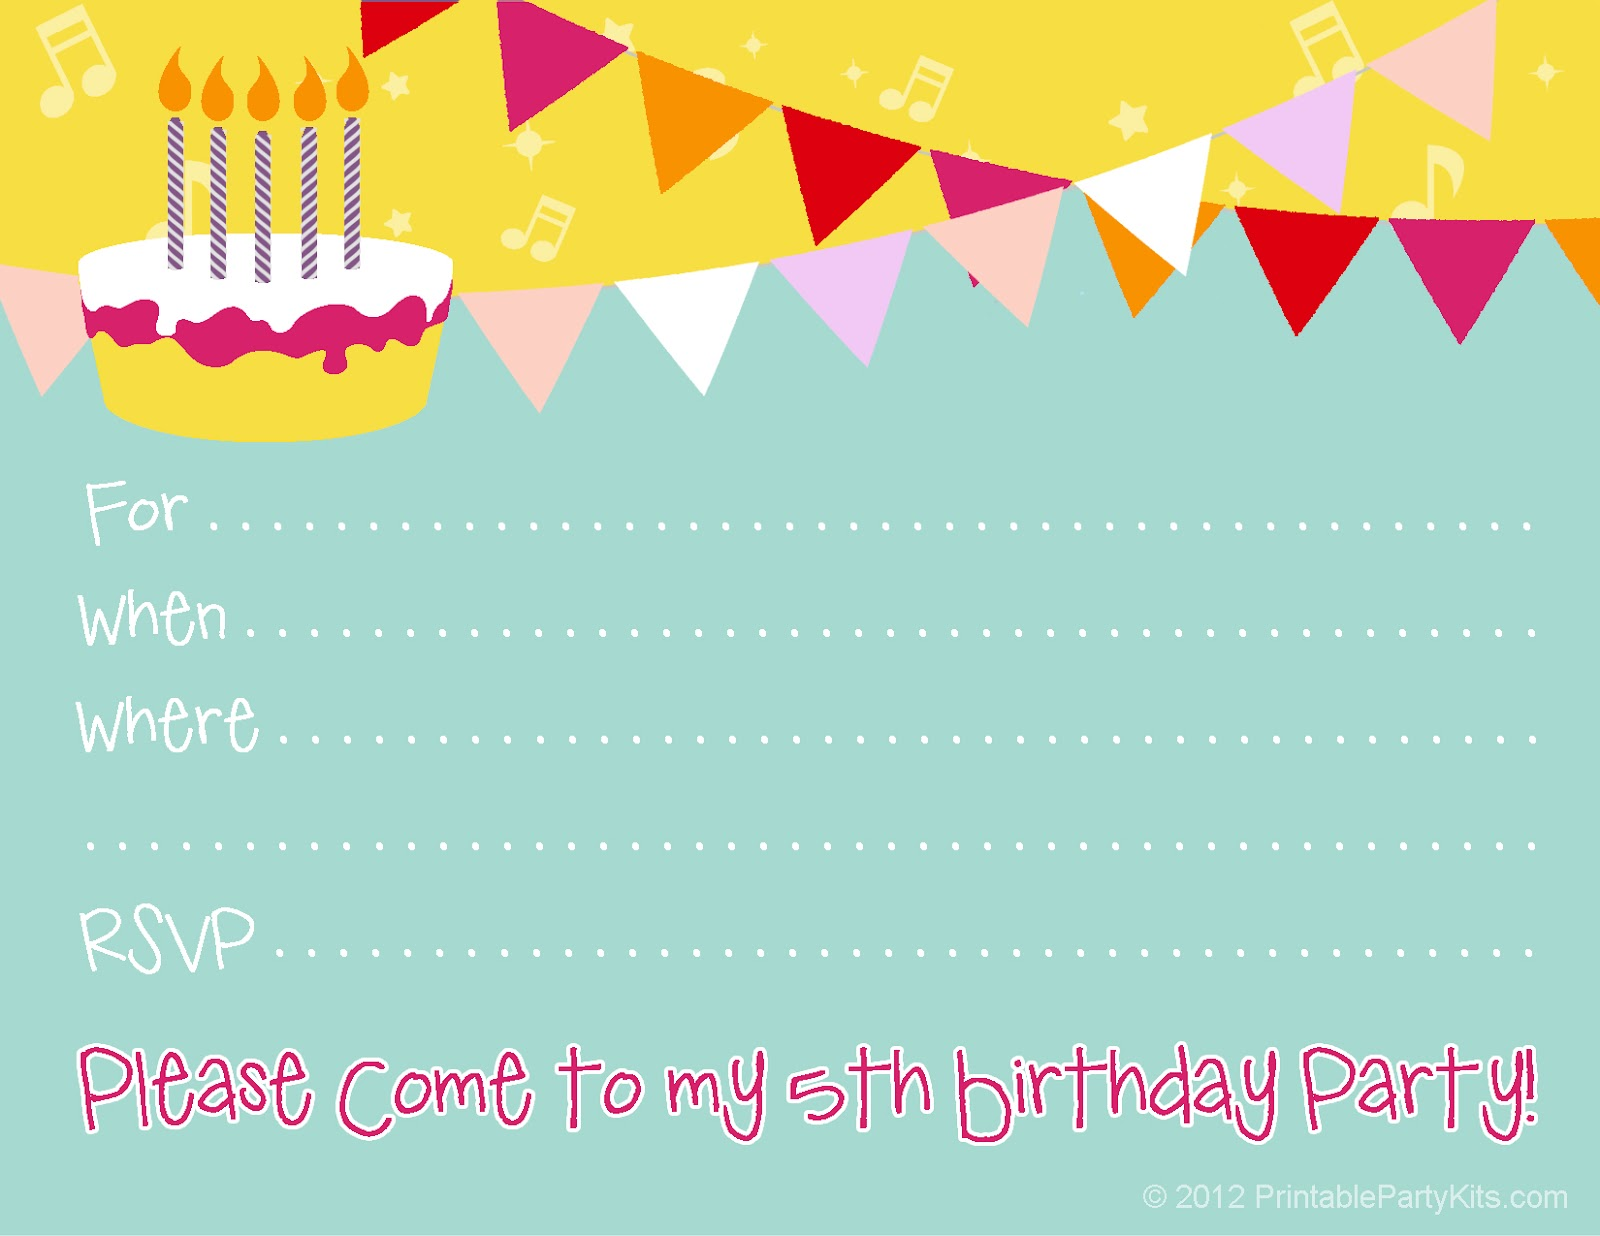 free party invitation template - Roberto.mattni.co